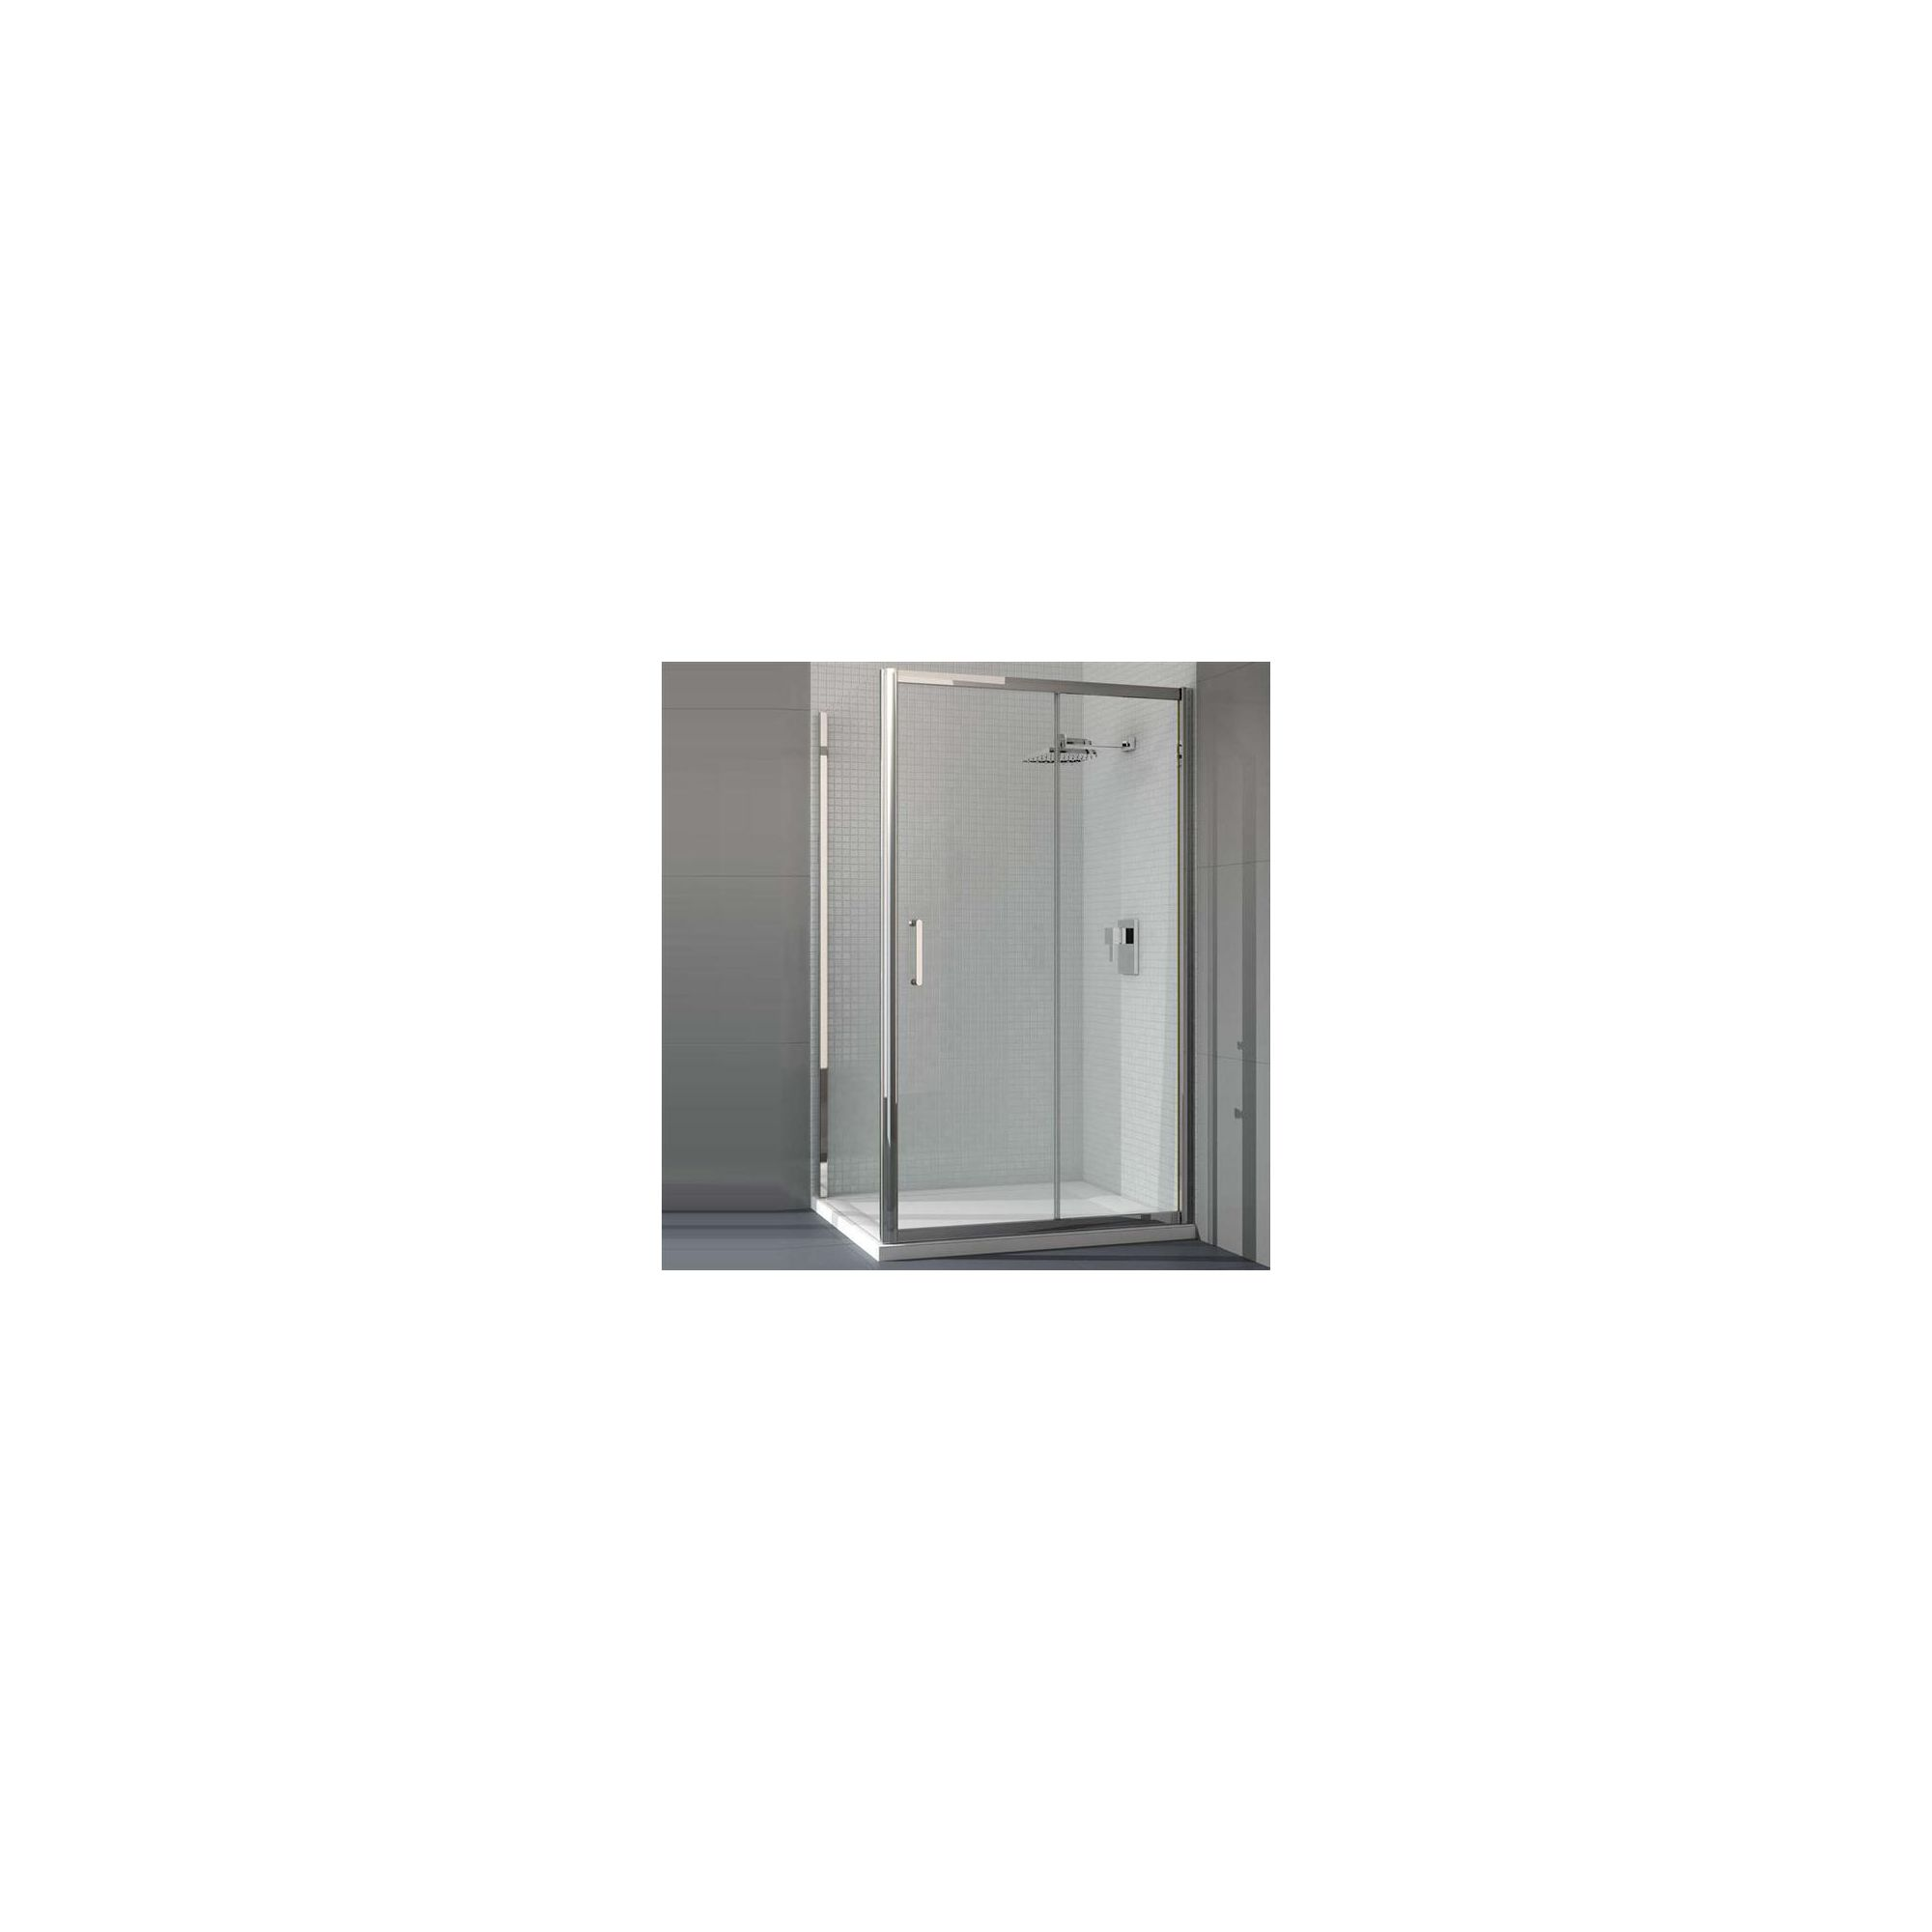 Merlyn Vivid Six Sliding Door Shower Enclosure, 1400mm x 900mm, Low Profile Tray, 6mm Glass at Tescos Direct